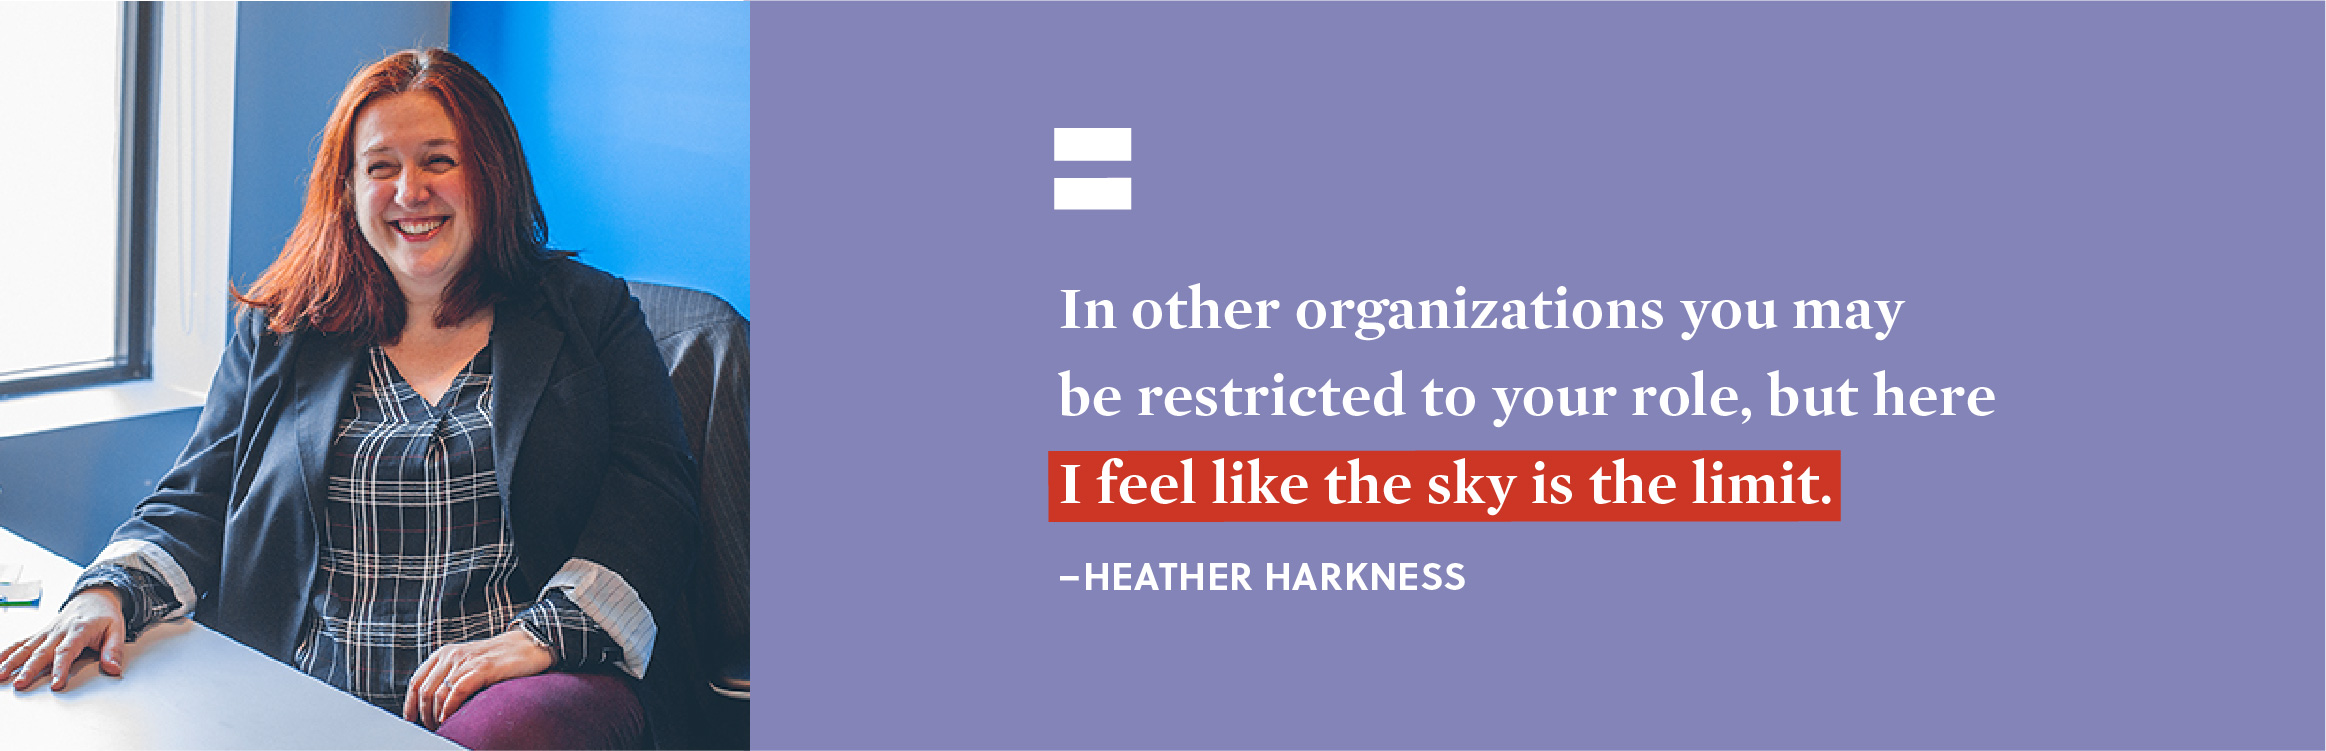 """In other organizations you may be restricted to your role, but here I feel like the sky is the limit."" - Heather Harkness."